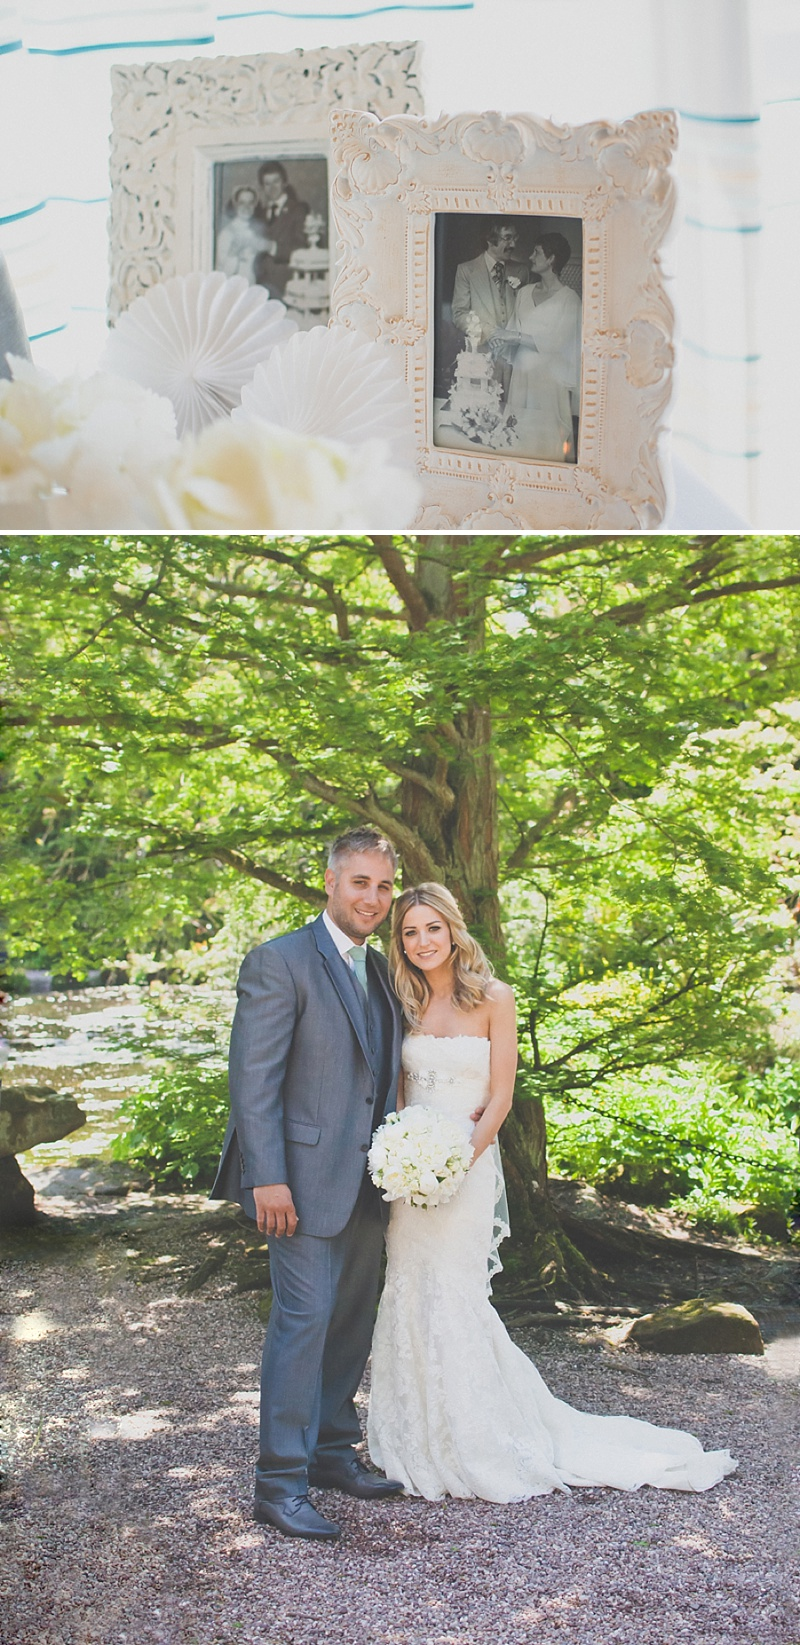 An Elegant White Themed Wedding At The Ness Botanic Gardens With Bride In Champagne From Blue By Enzoani With Aldo 'Corinne' Shoes Images By Rivington Photography_0025